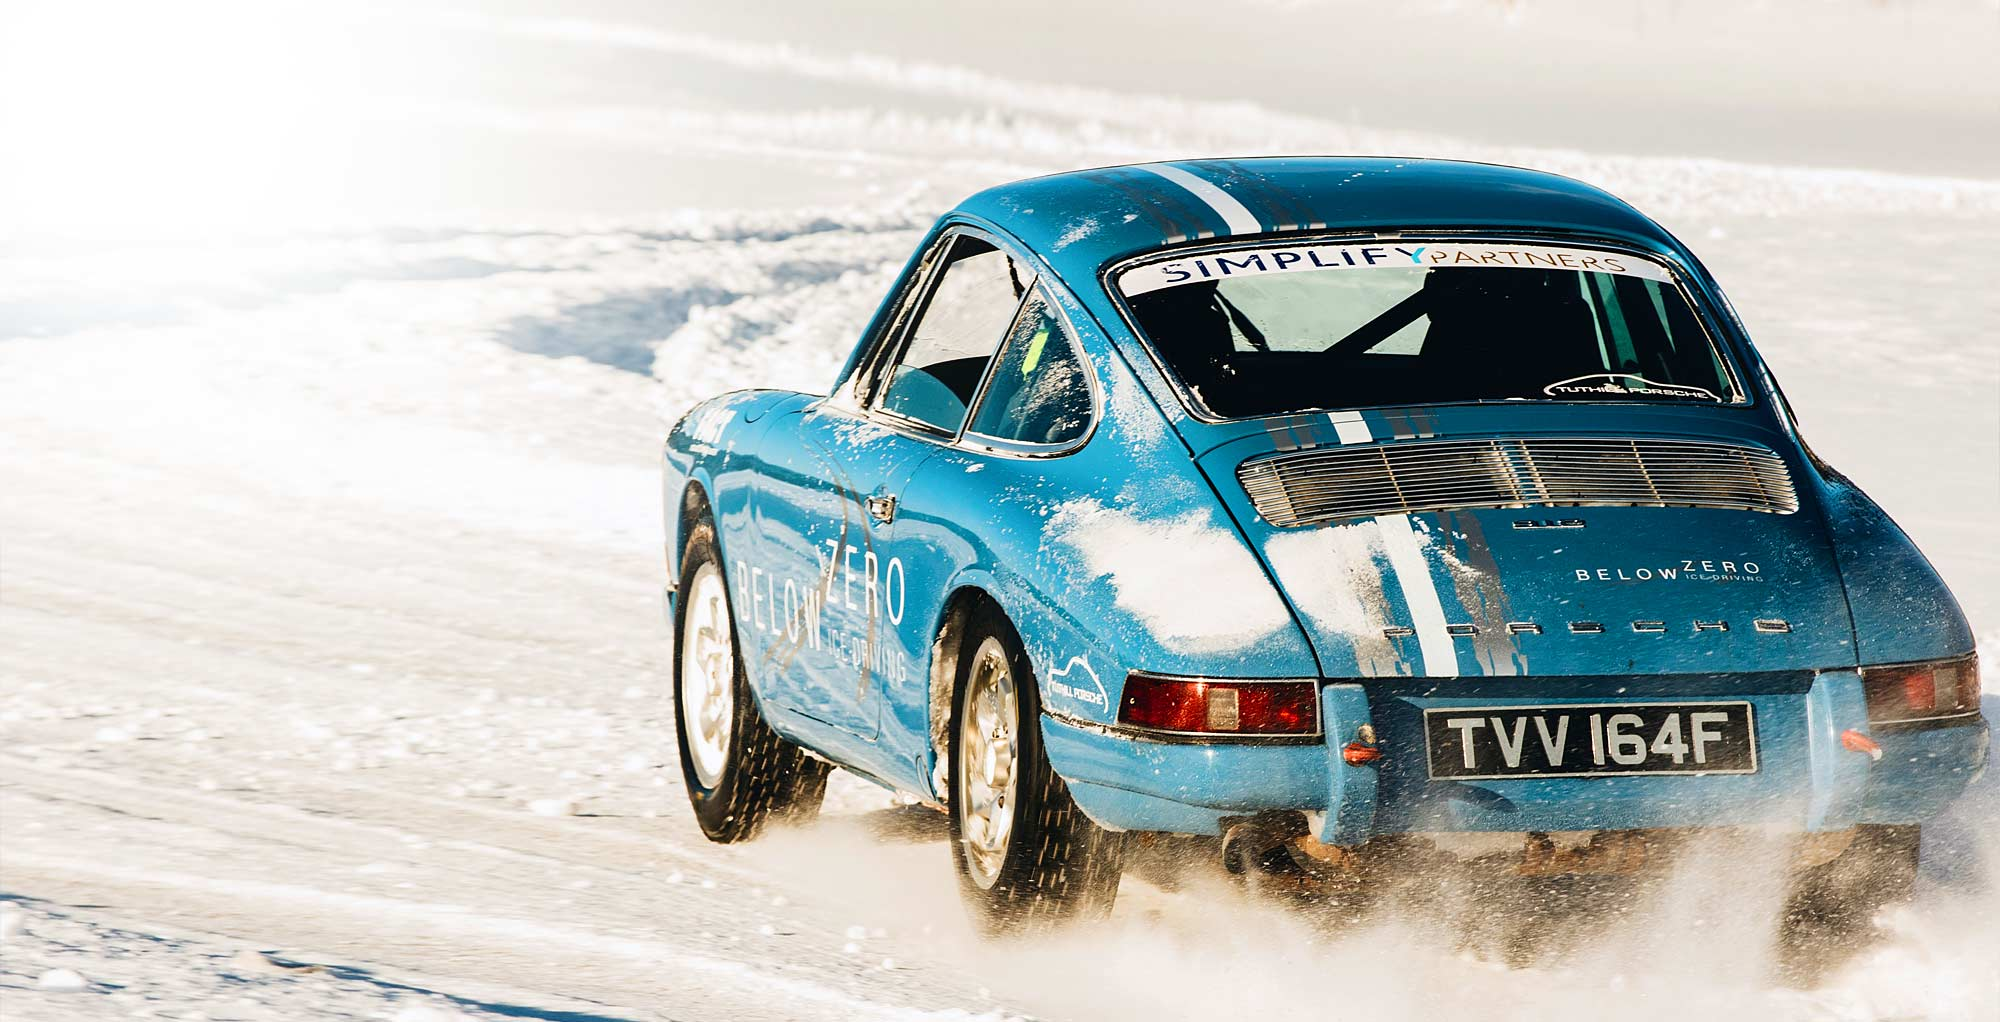 Ice Driving with Tuthill Porsche (mobile)